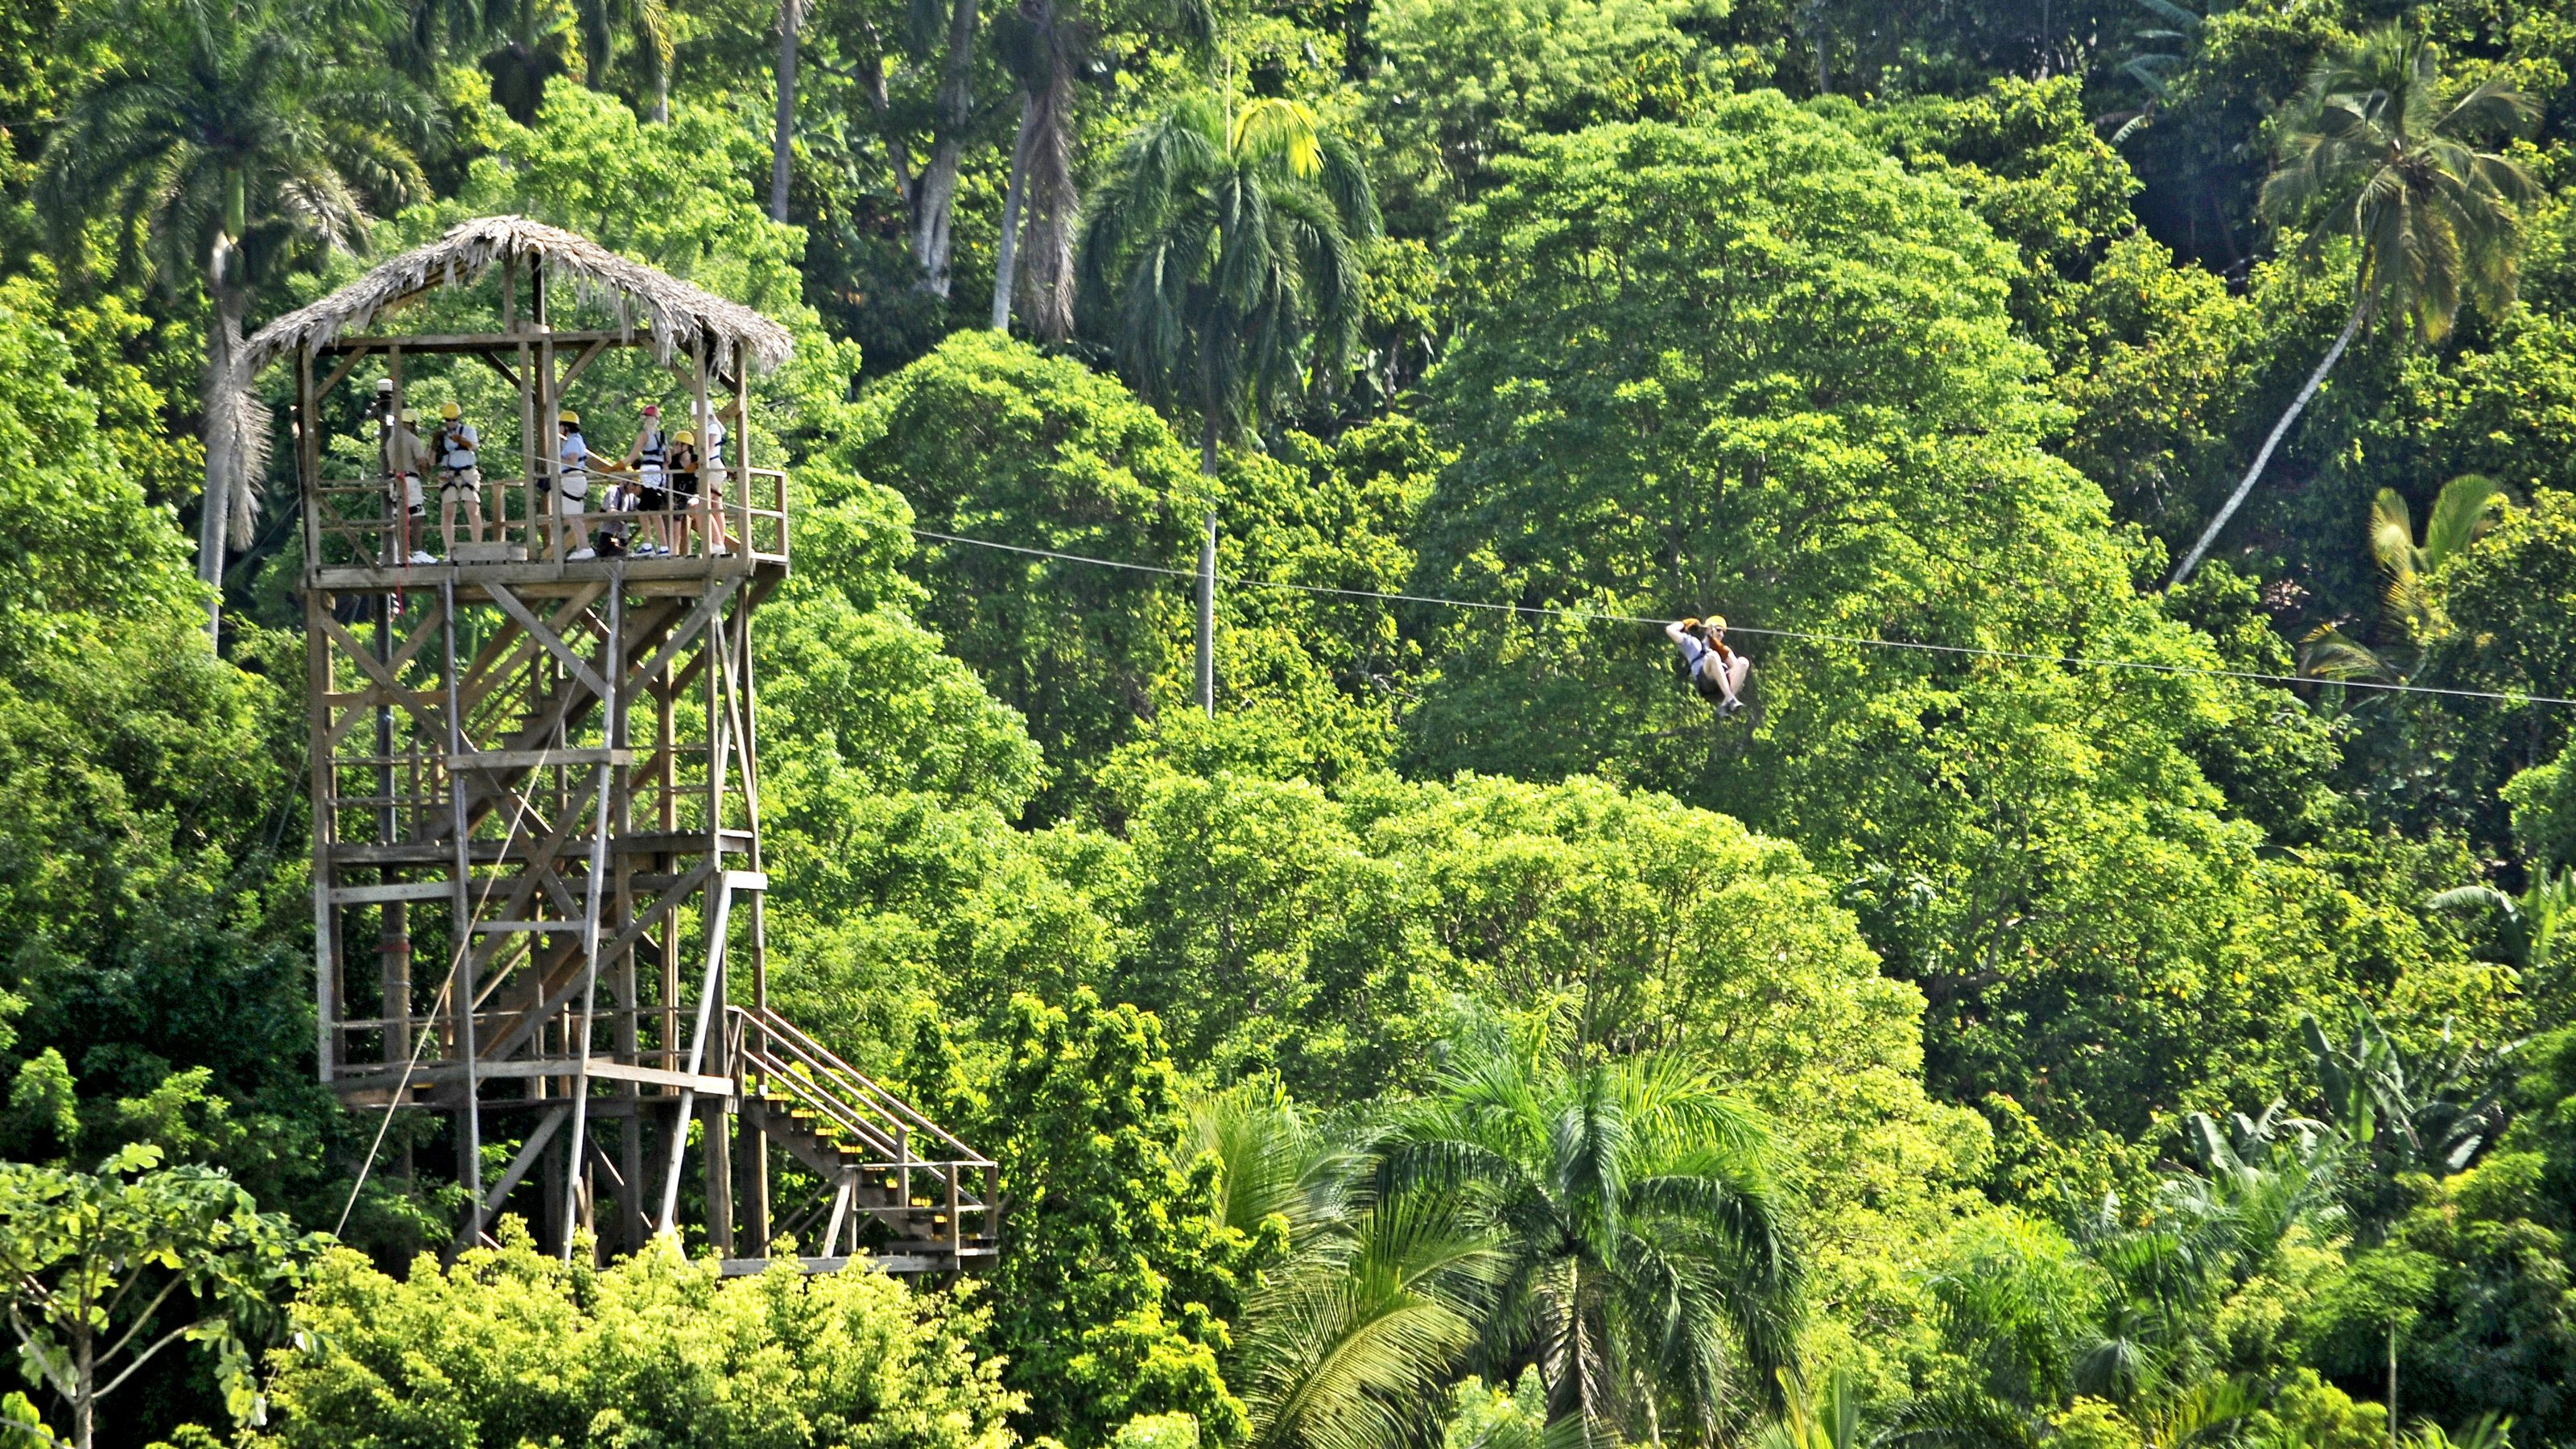 man riding zip line through forest in Santo Domingo